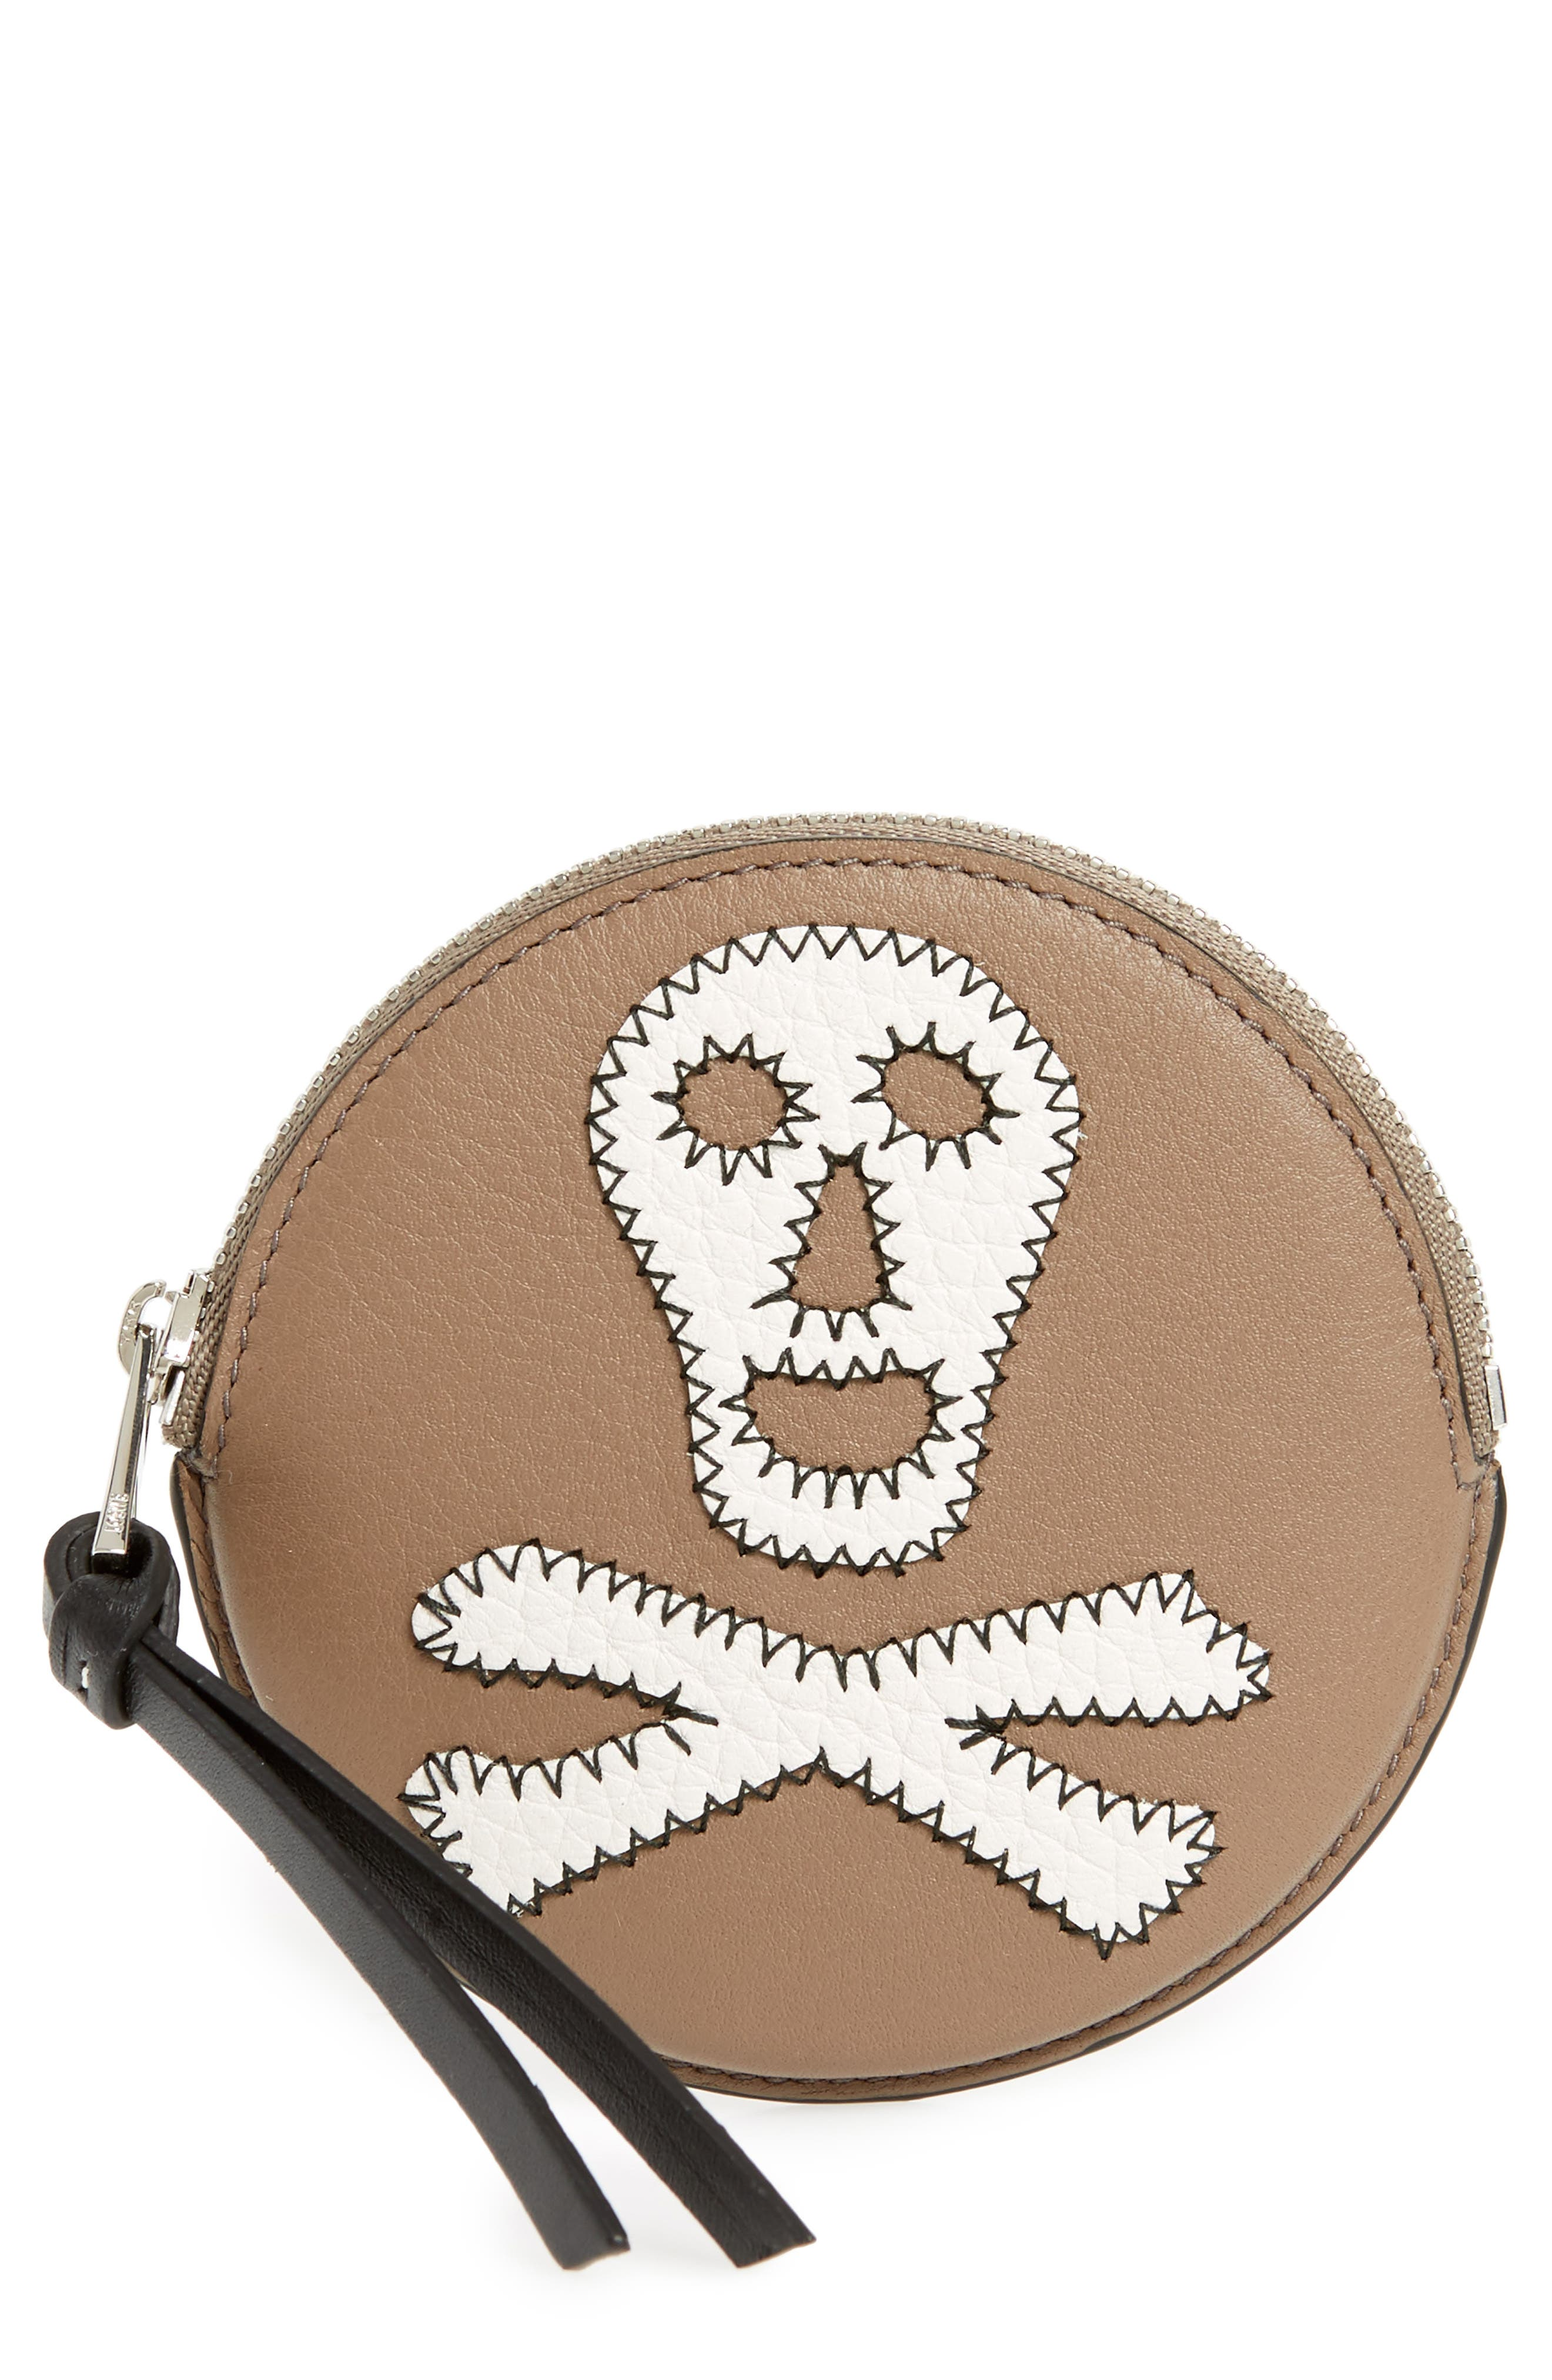 Skull Round Leather Zip Pouch,                             Main thumbnail 1, color,                             Dark Taupe/ Tan/ White